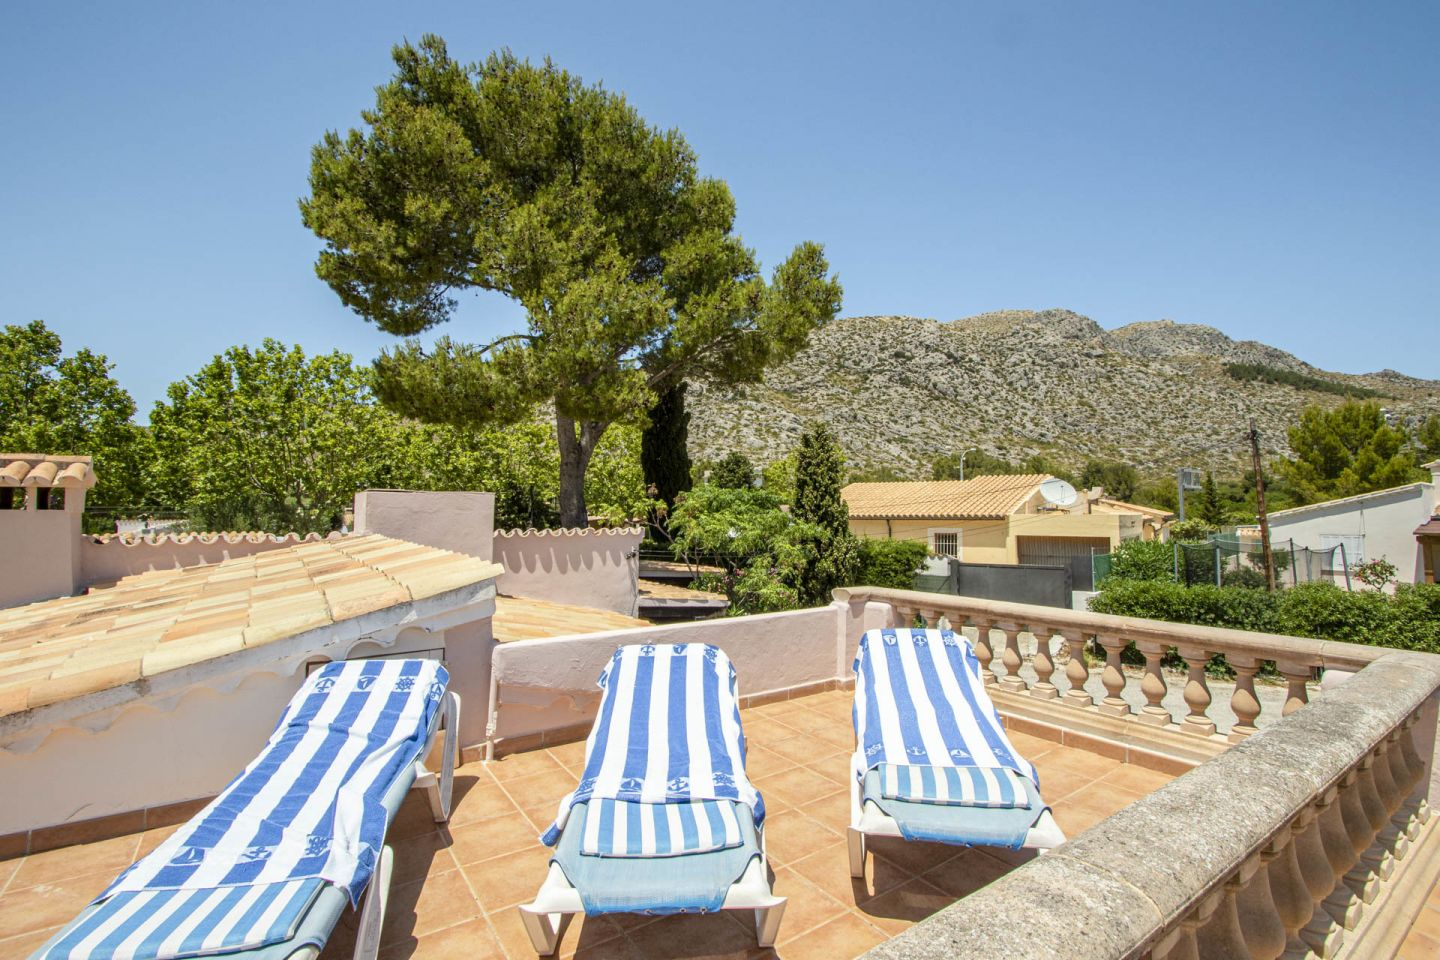 4 Bed Villa for sale in PUERTO POLLENSA 9